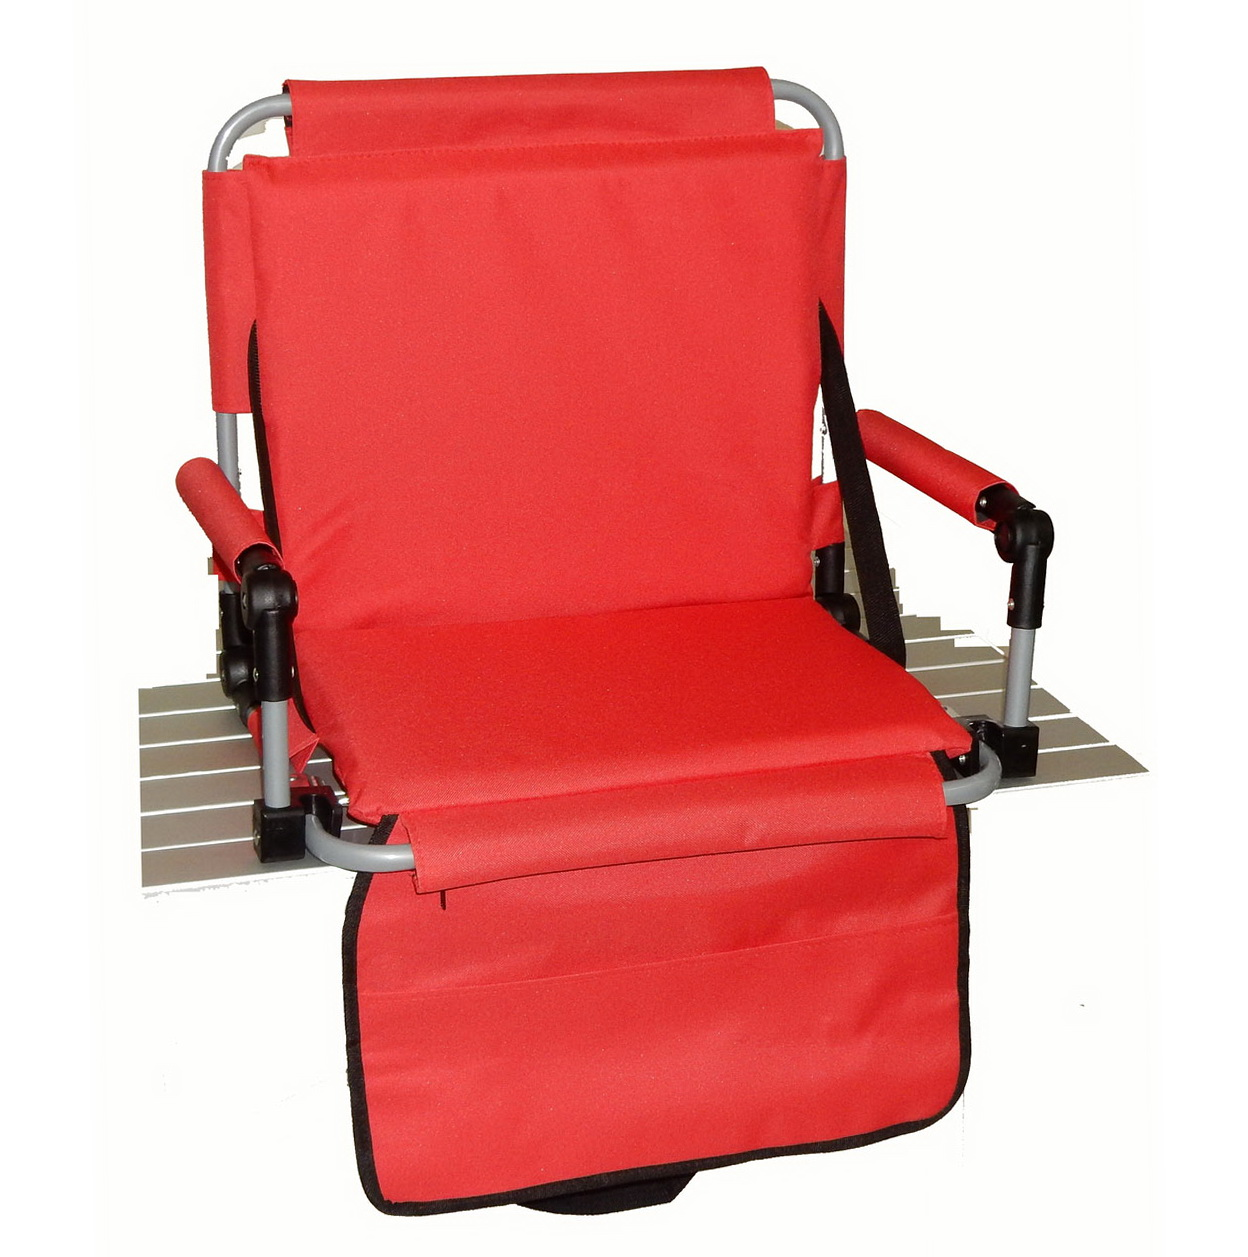 Seat Cushion For Back Pain As Seen On Tv